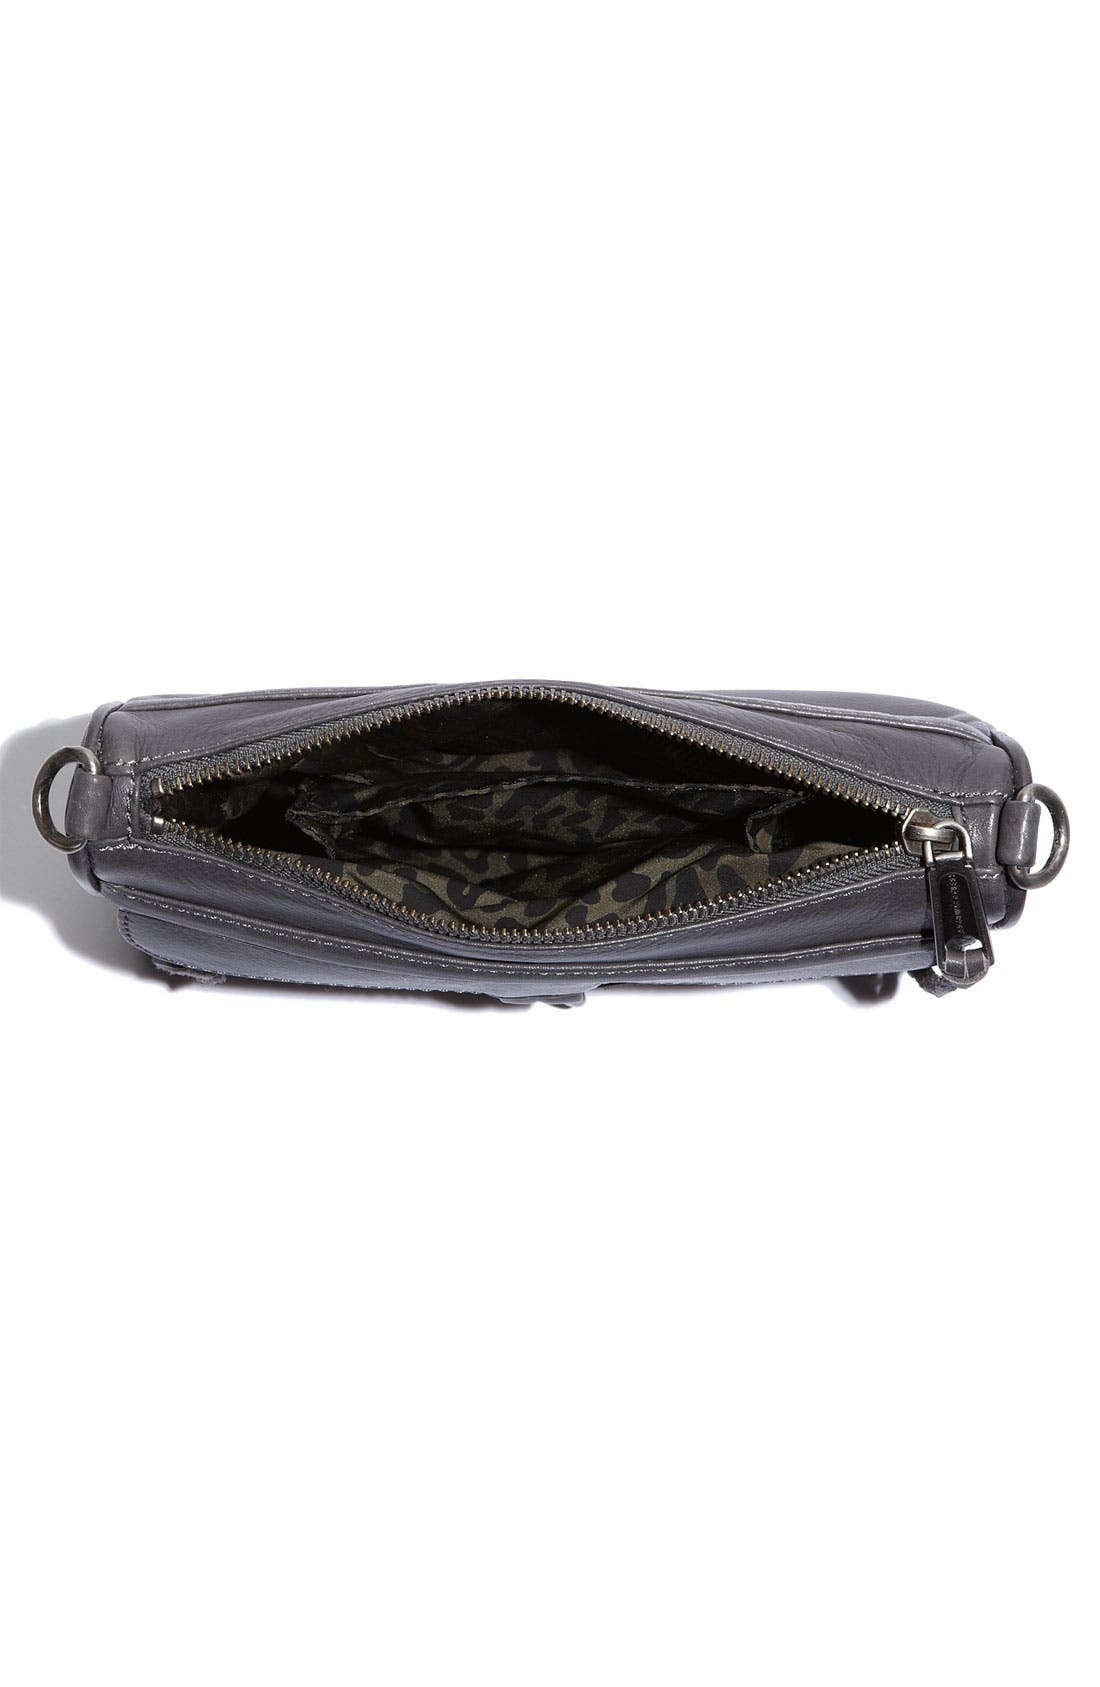 'Mini MAC' Croc Embossed Convertible Crossbody Bag,                             Alternate thumbnail 20, color,